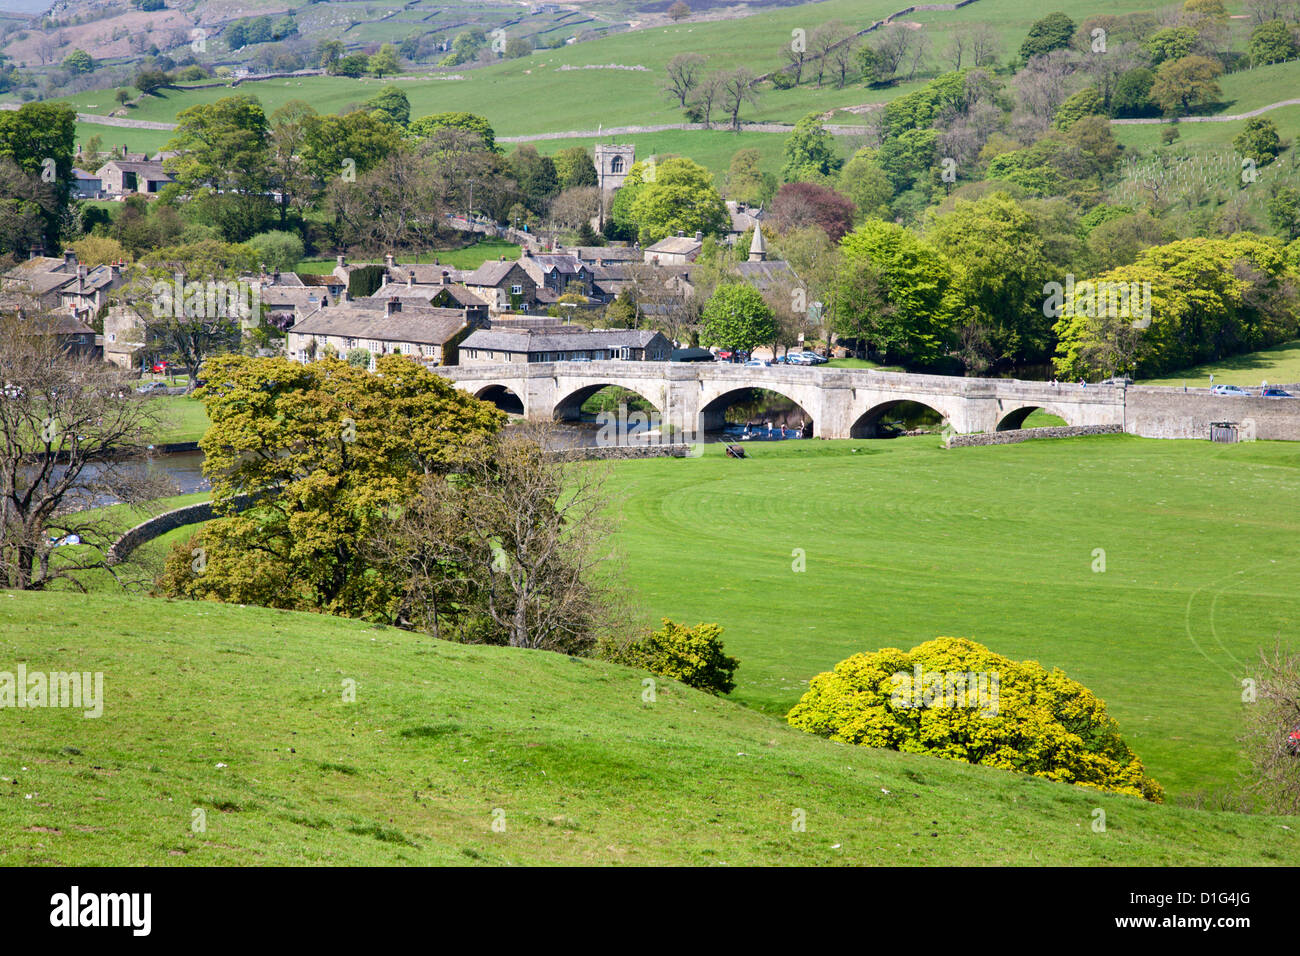 The Village of Burnsall in Wharfedale, Yorkshire Dales, Yorkshire, England, United Kingdom, Europe - Stock Image